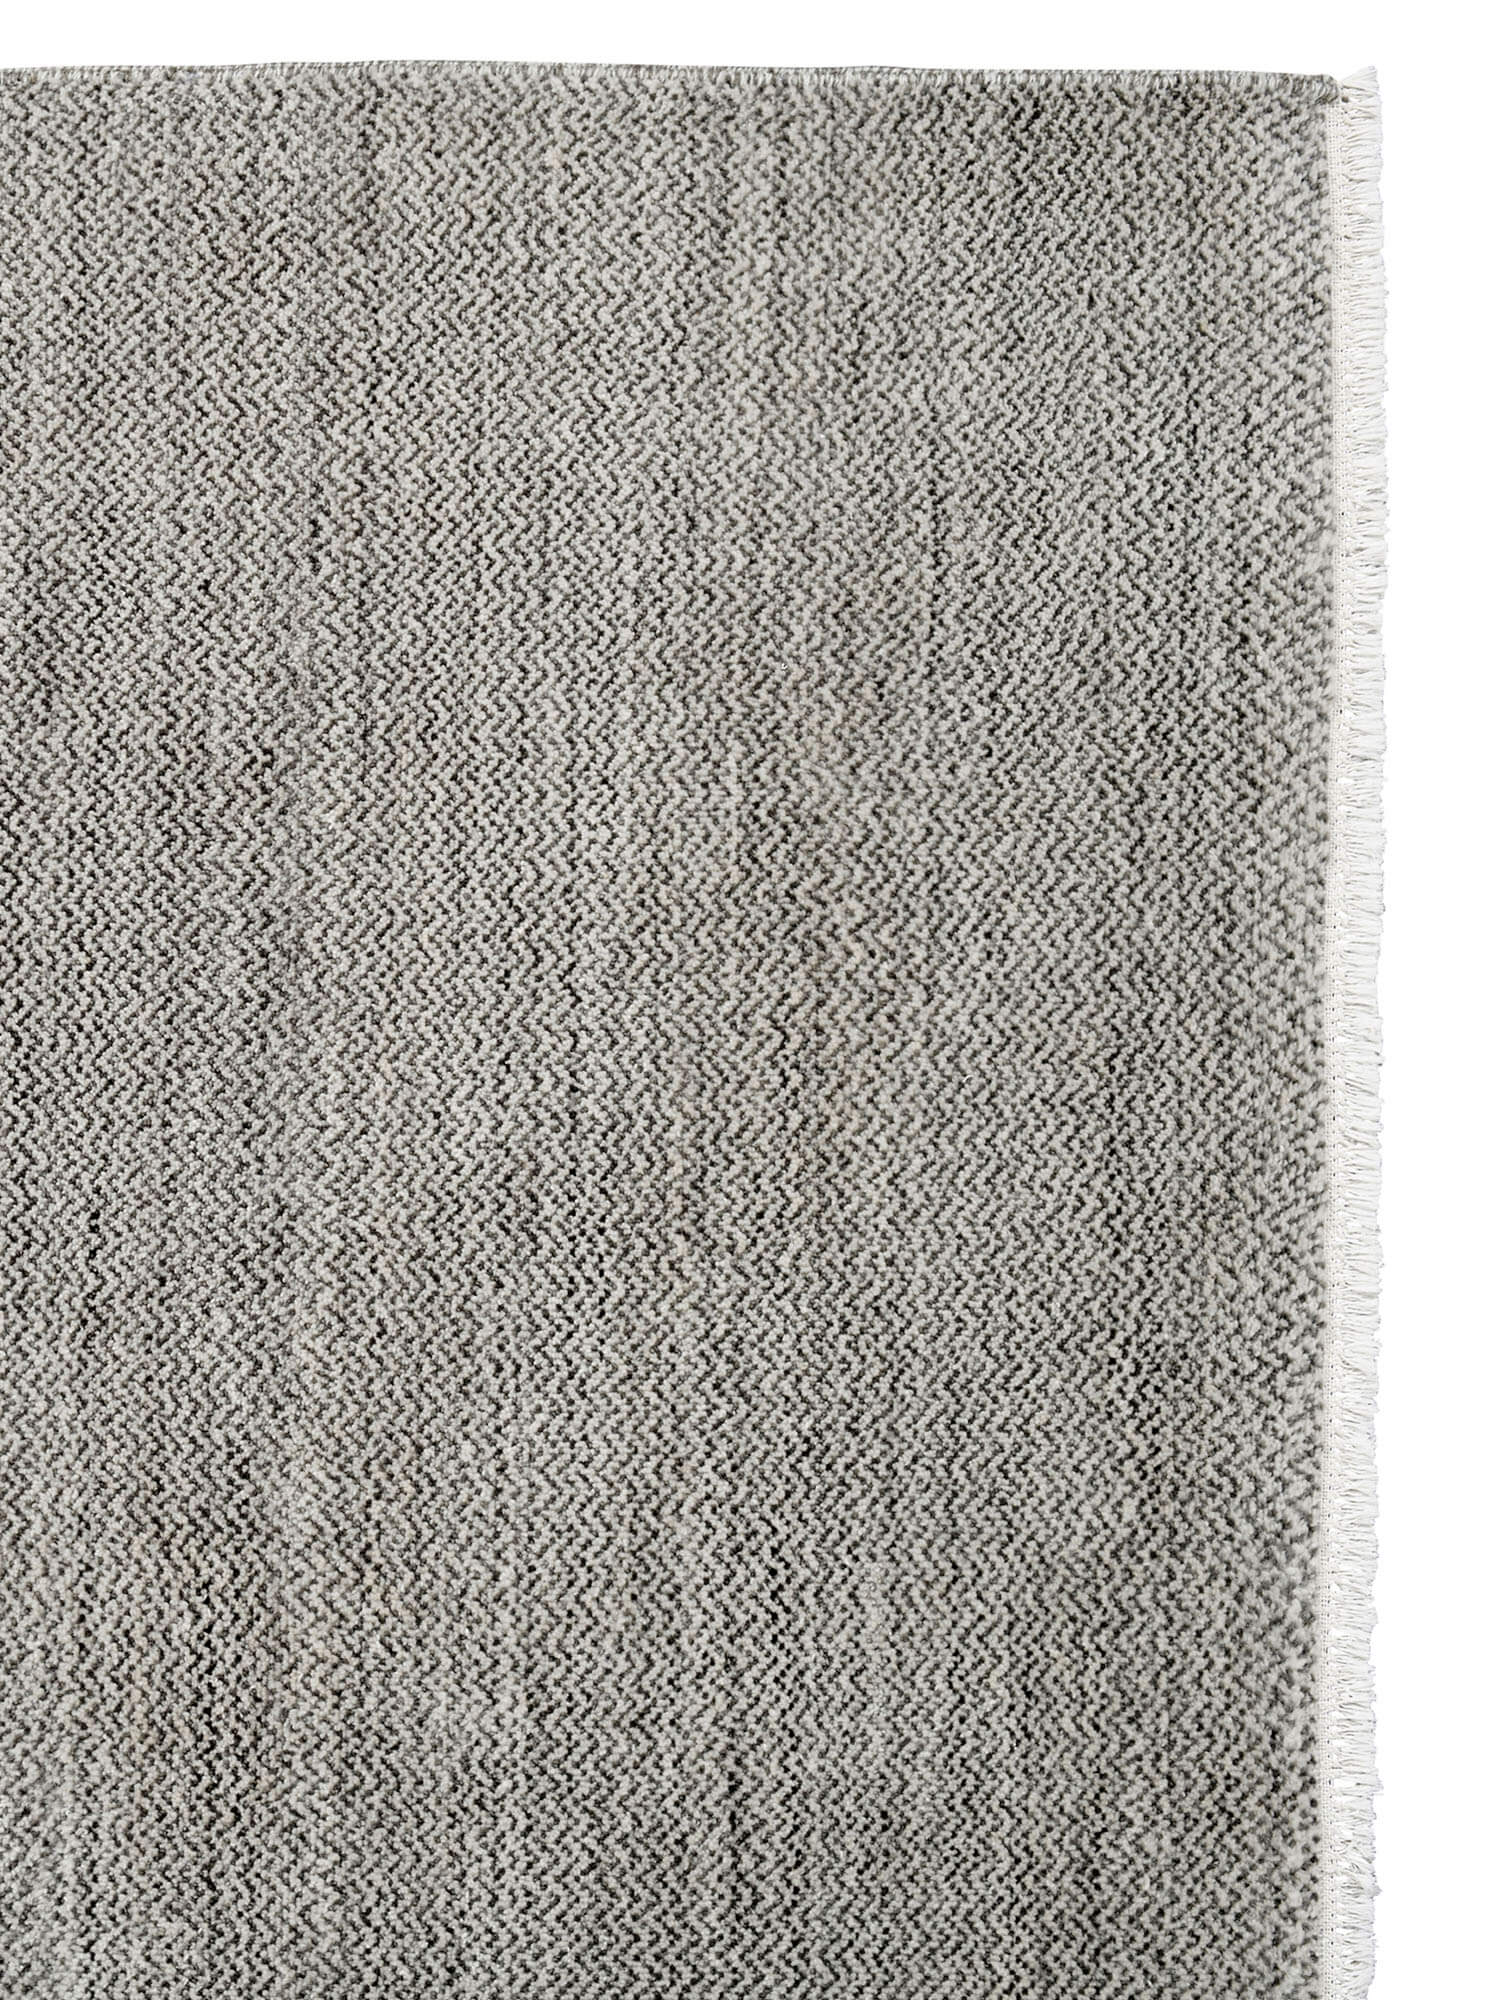 est living handcrafting a legacy Armadillo Rugs ACo HeirloomCollection PersiaKnot Medea Sterling Graphite Corner